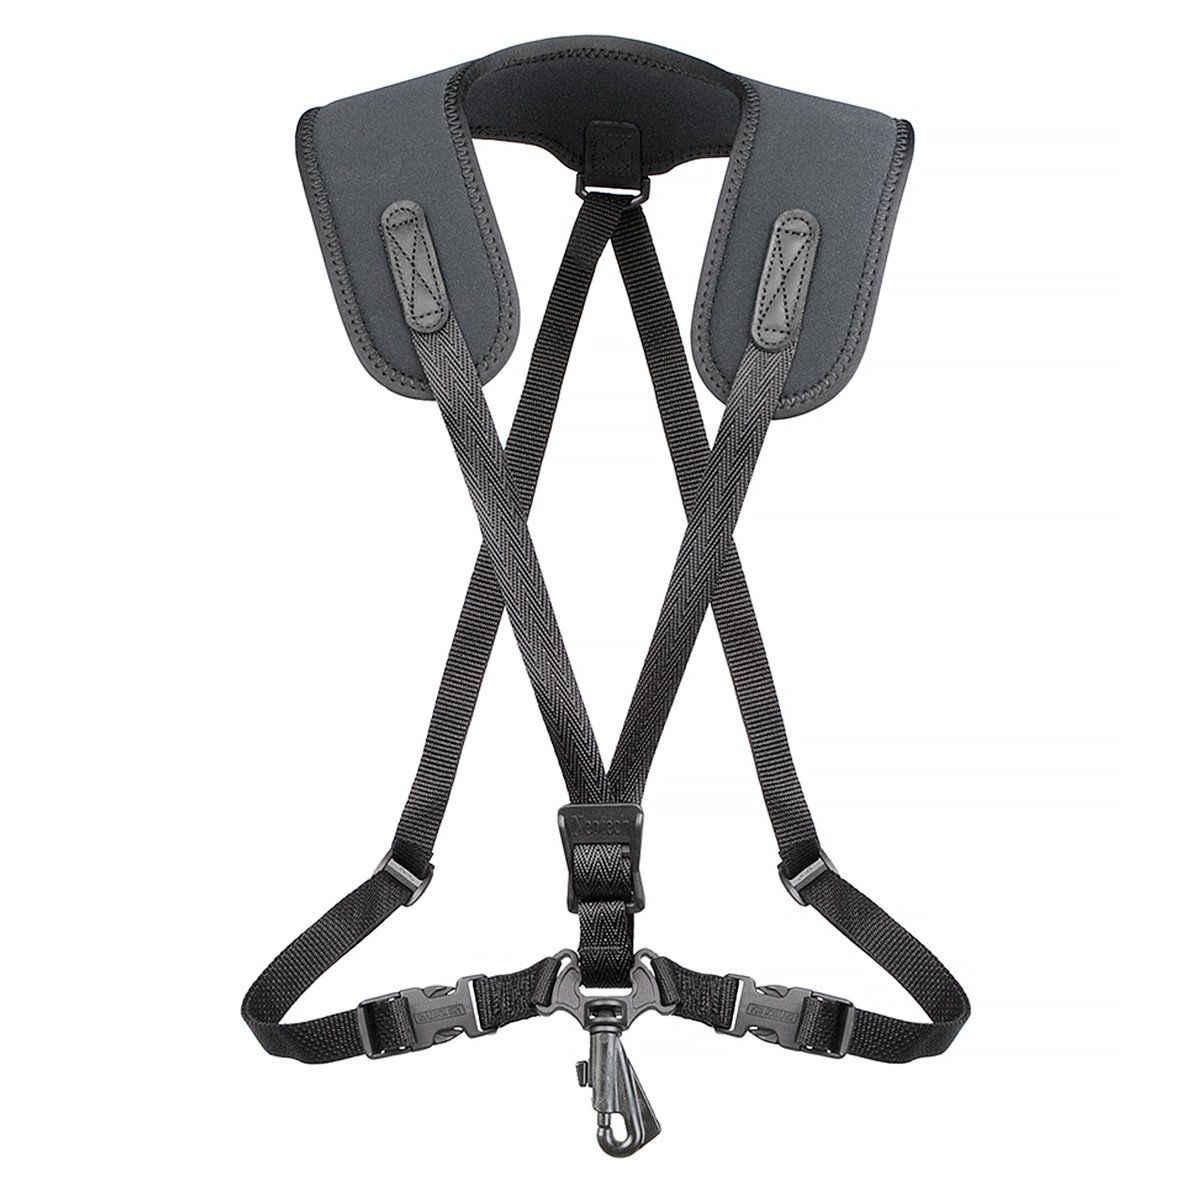 Neotech Super Harness, Black, Swivel Hook KMC Music Inc 2601162